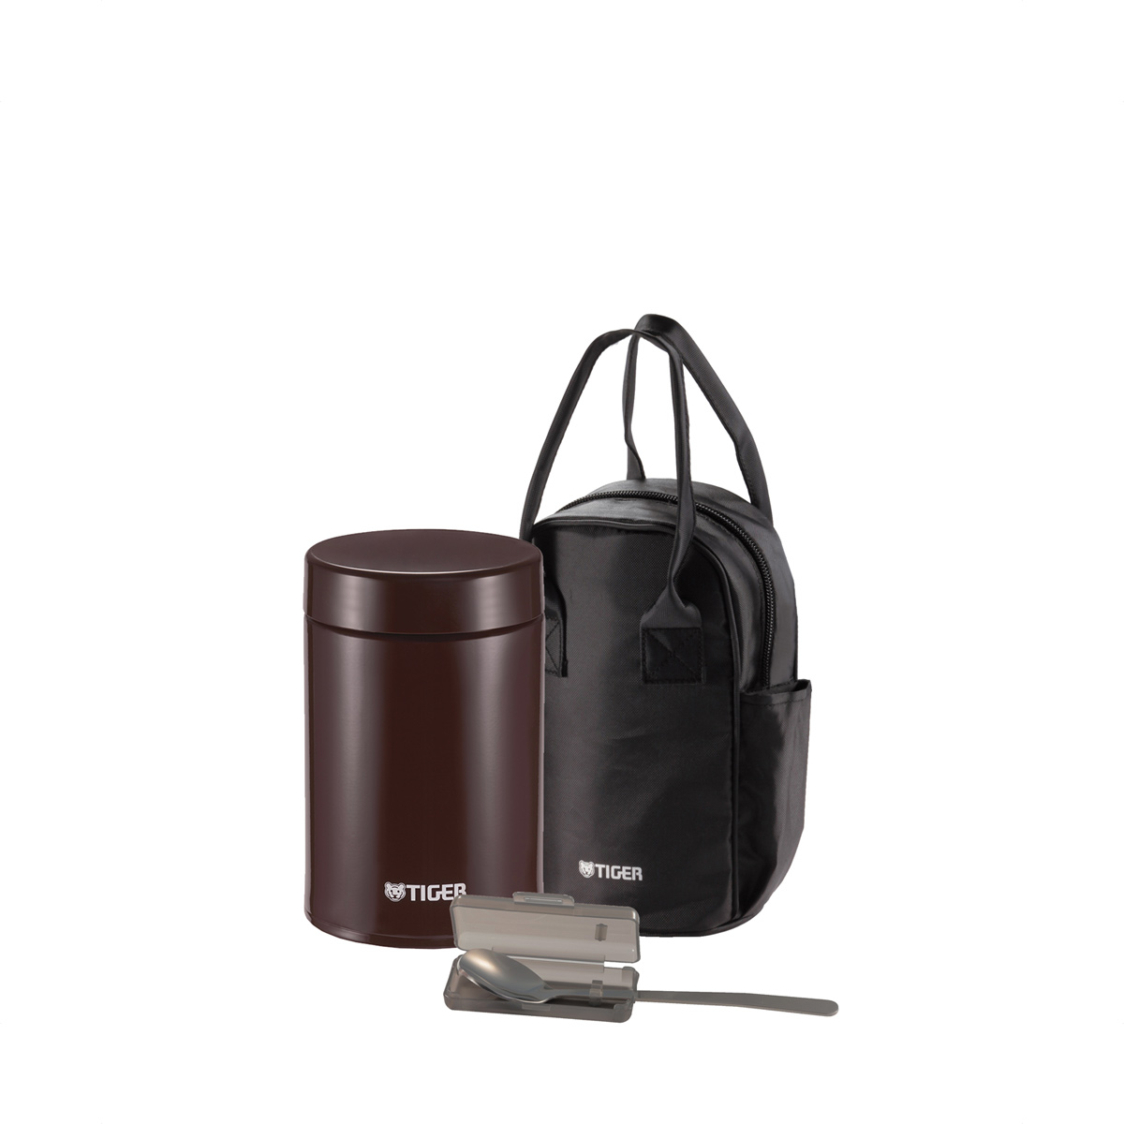 Tiger 750ml SSteel Food Jar With SSteel Spoon And Pouch Cocoa